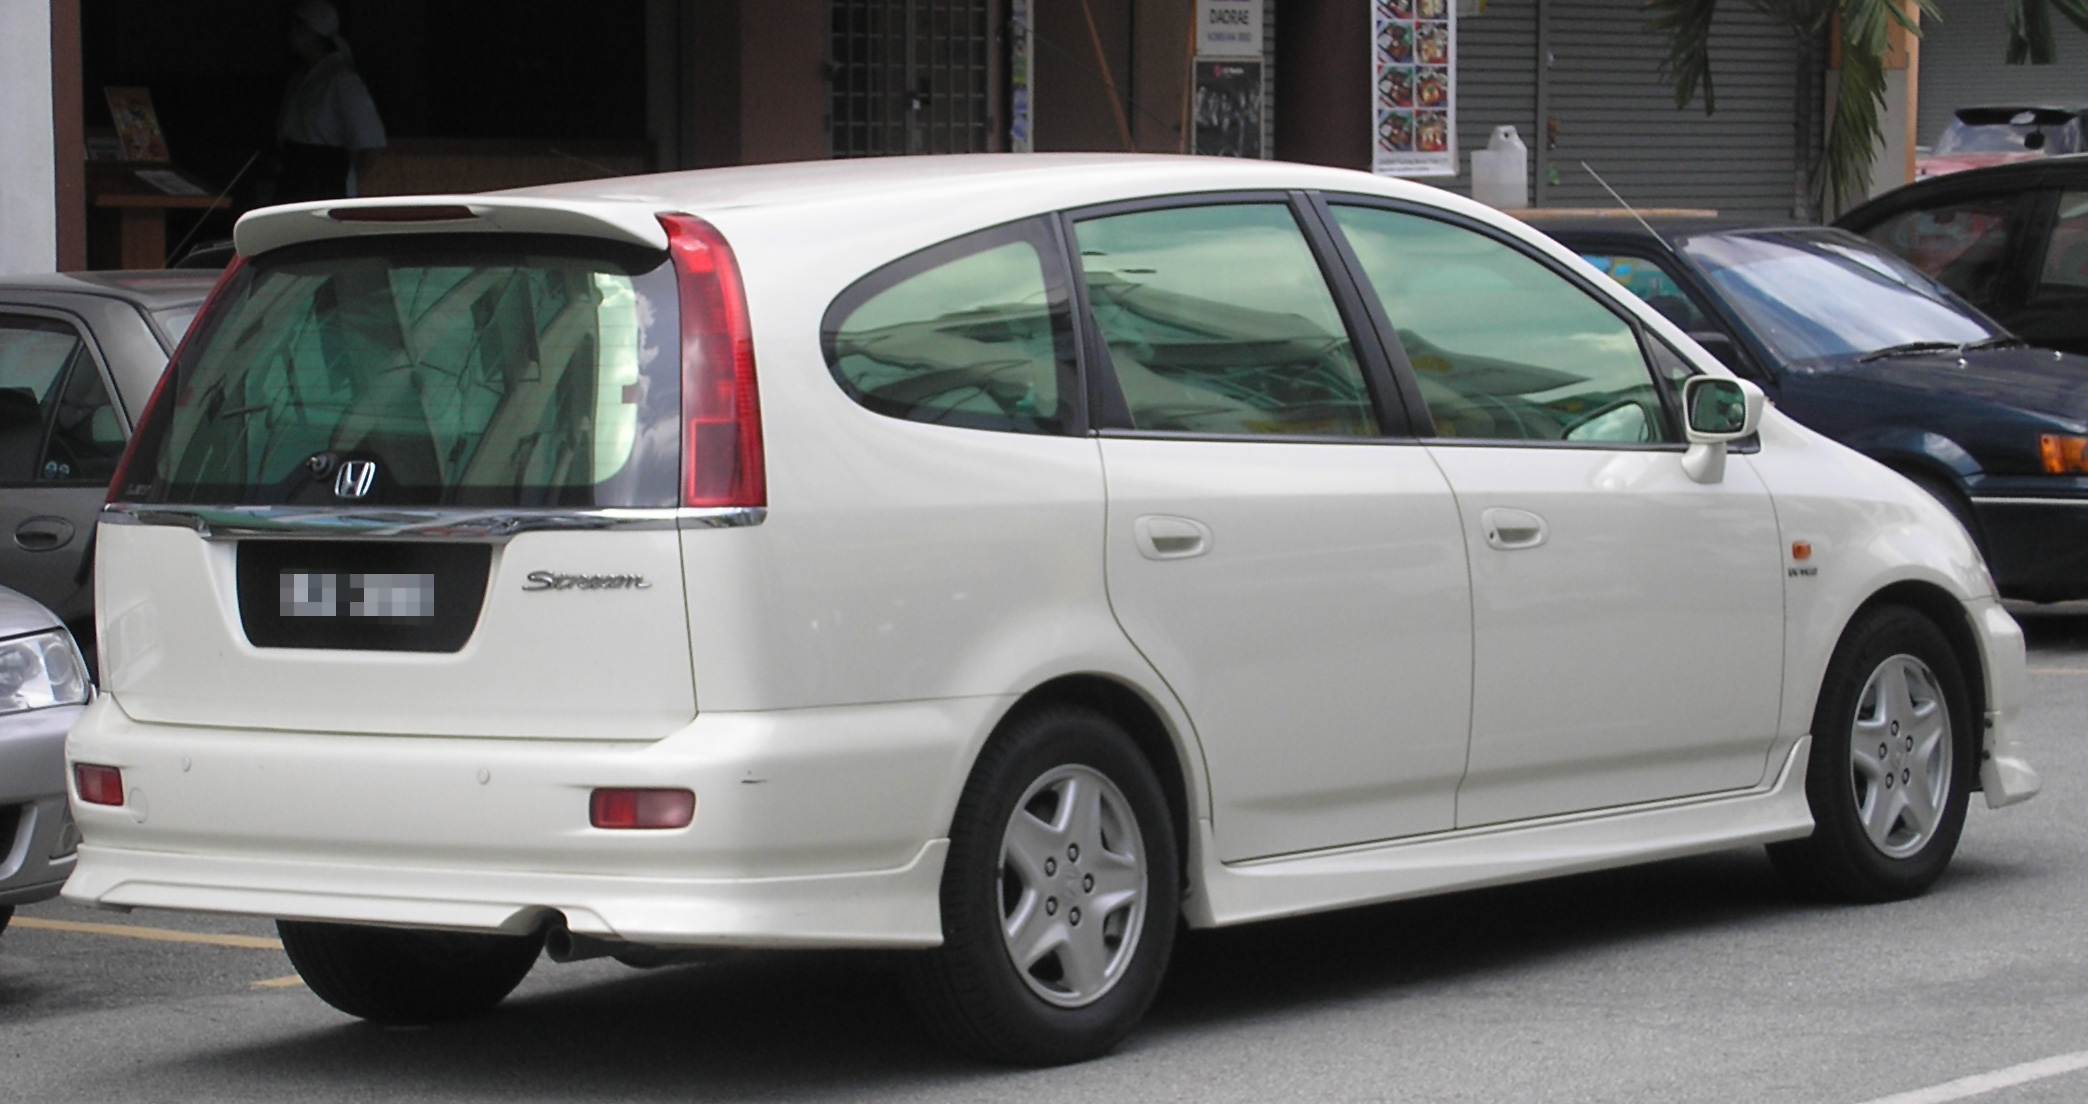 file honda stream first generation rear wikimedia commons. Black Bedroom Furniture Sets. Home Design Ideas